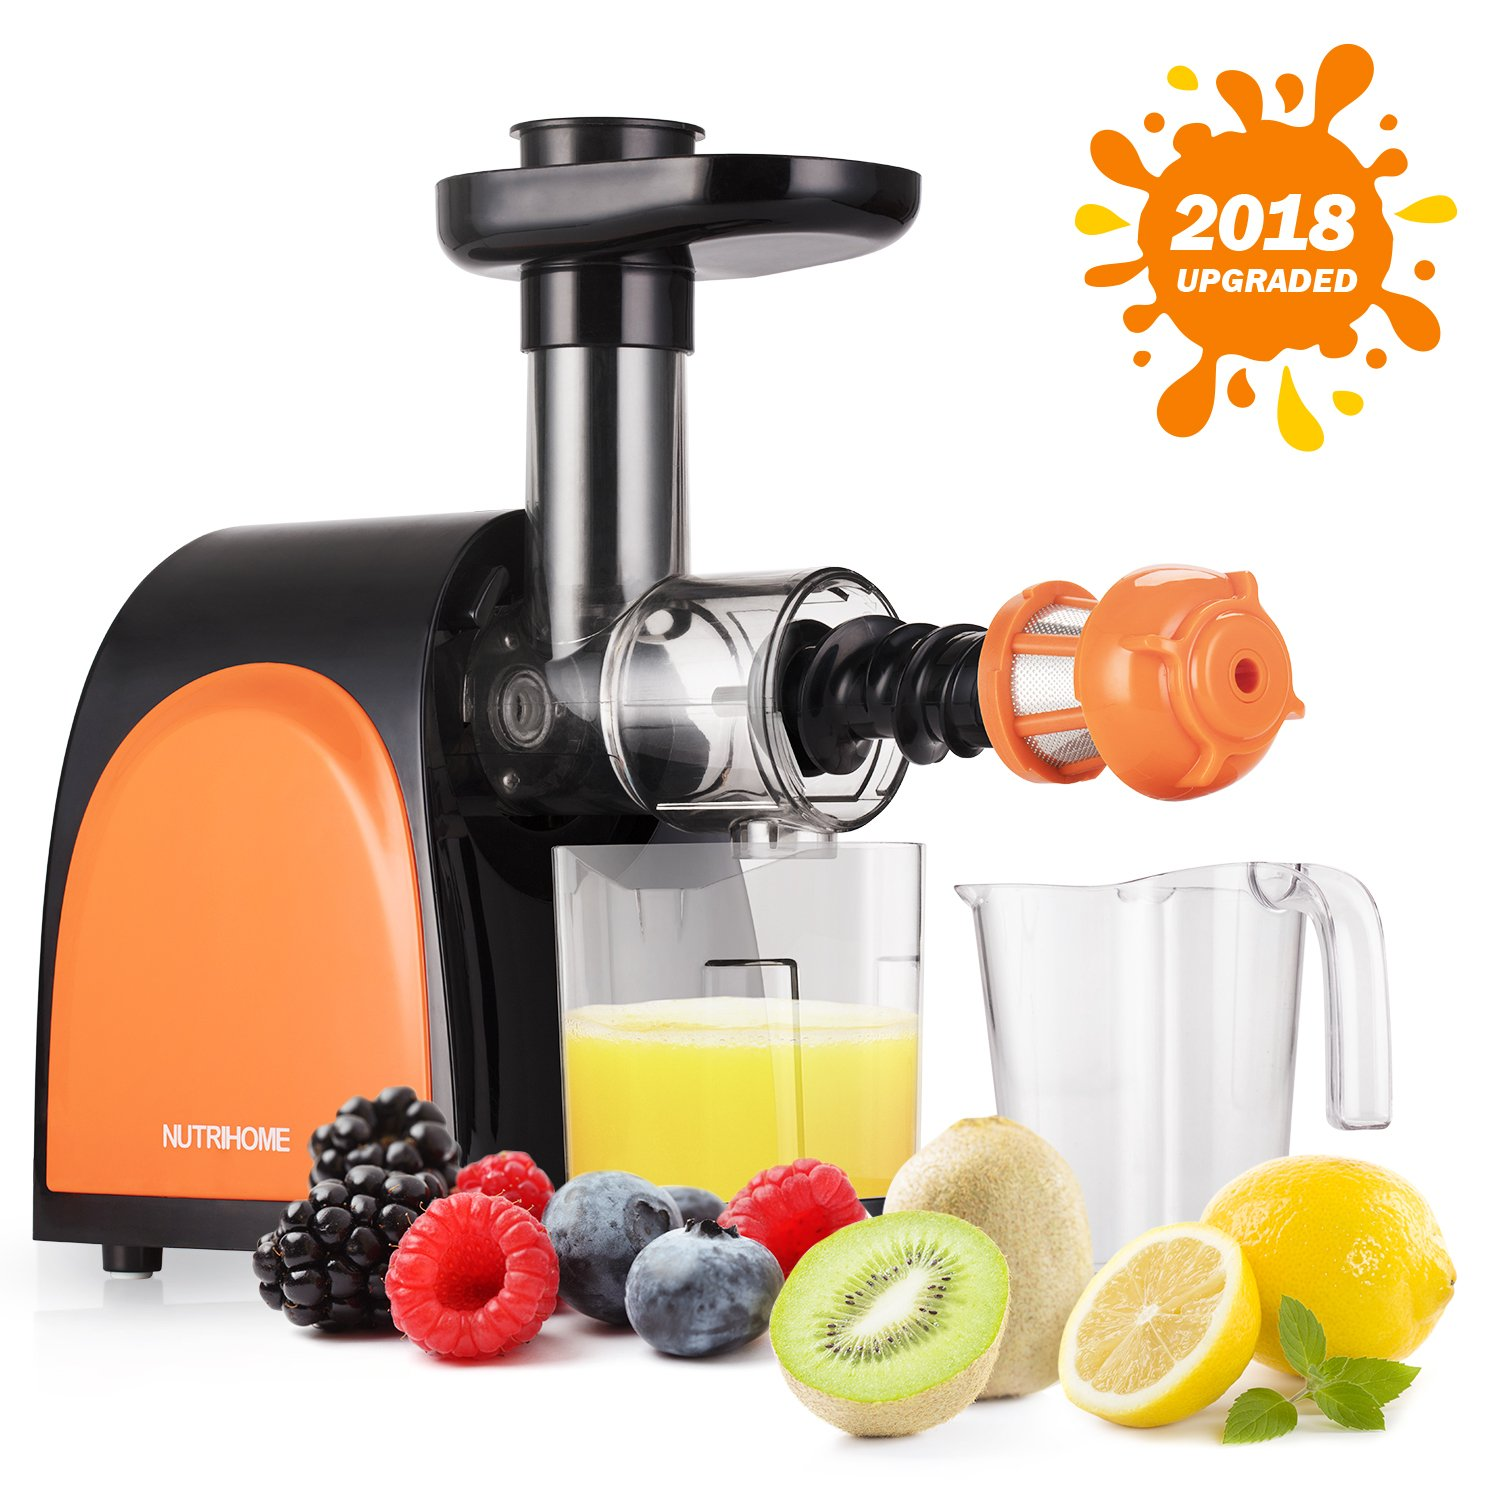 Slow Masticating Juicer,Cold Press Juicer Machine[2018 Upgraded] with Juice Jug and Brush to Clean Conveniently,More high Quality and Quiet Motor Juicer Machine for all Fruits and Vegetables.